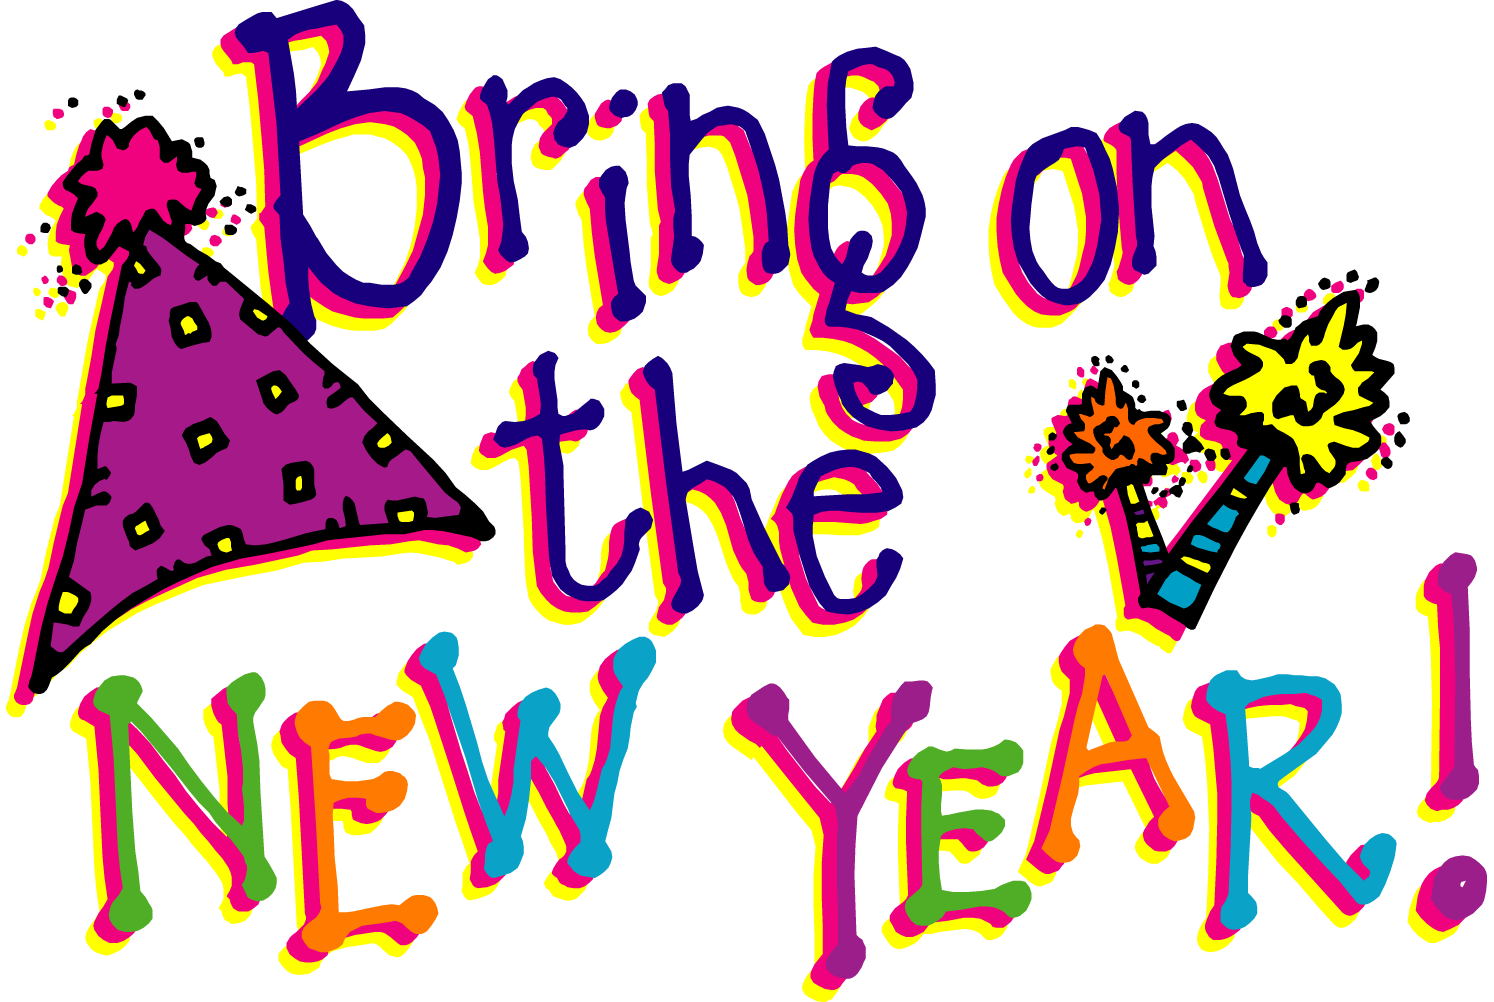 new year's day 2014 clipart - photo #12